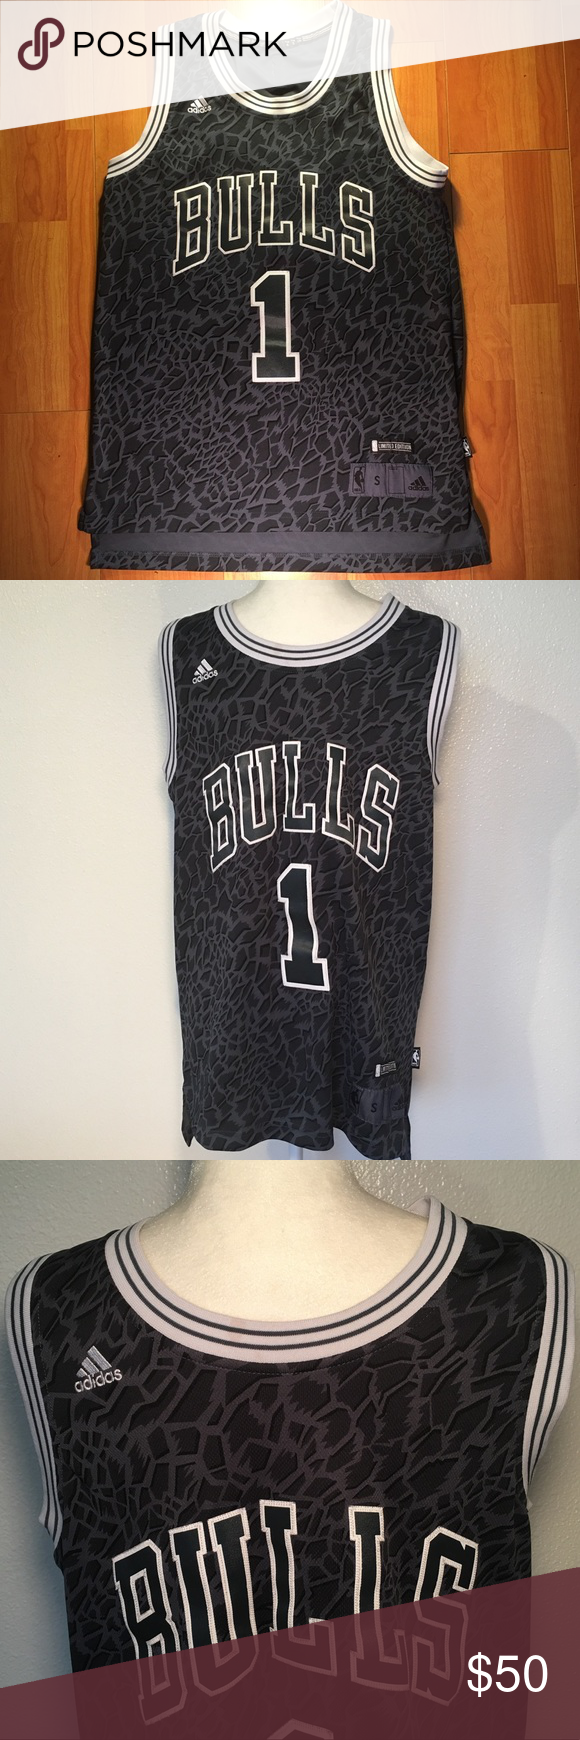 hot sale online 54244 2aeff Limited Edition Adidas Techshift Swingman Jersey NWOT Adidas ...